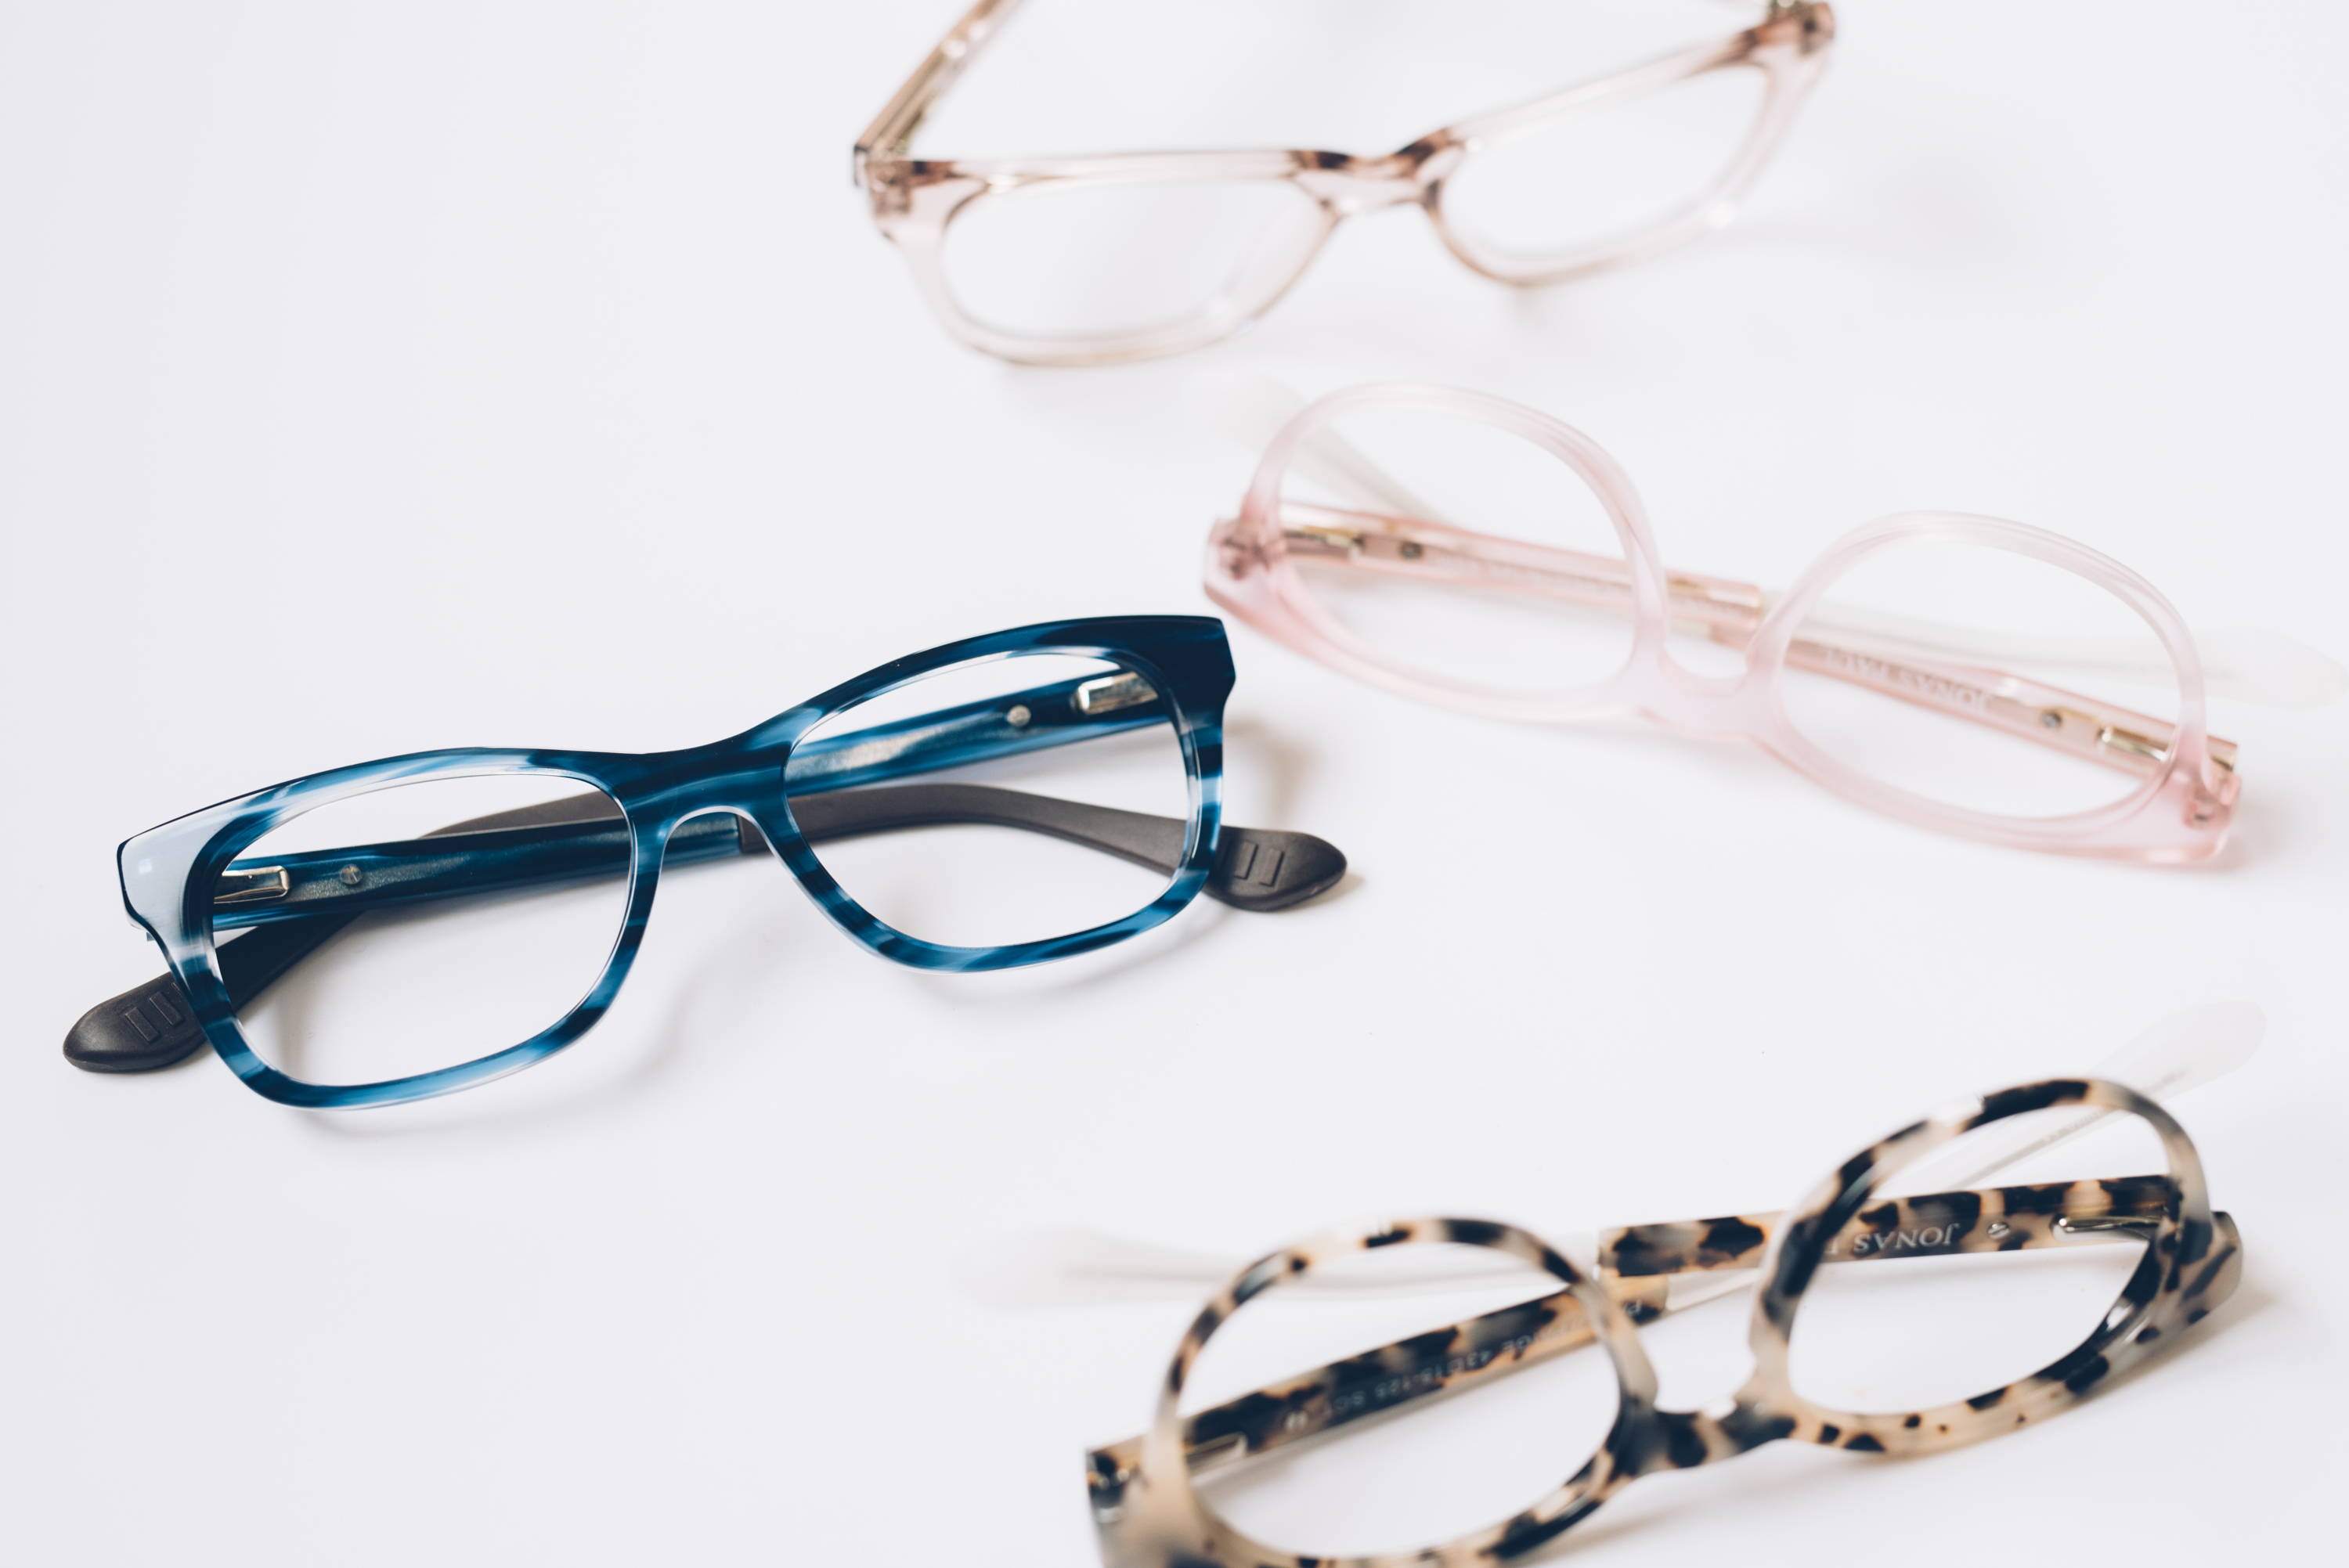 Always have a spare in case of accidental breakage. Most kids don't have a pair of old glasses lying around. Spare kids glasses can be a life saver.